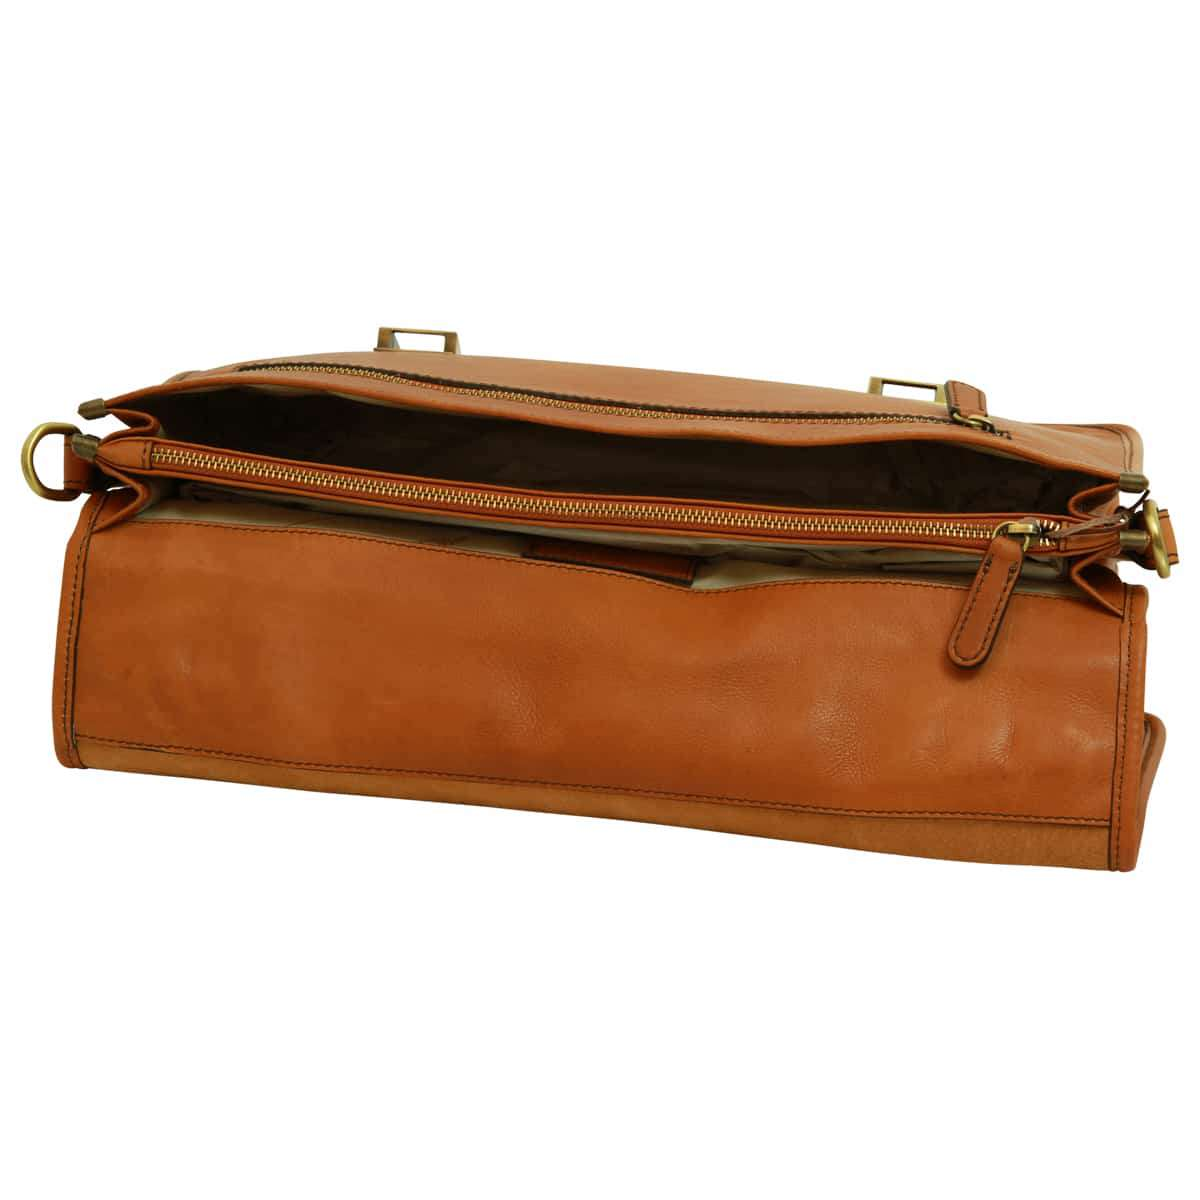 Soft Calfskin Leather Briefcase with shoulder strap - Gold | 030991CO E | Old Angler Firenze